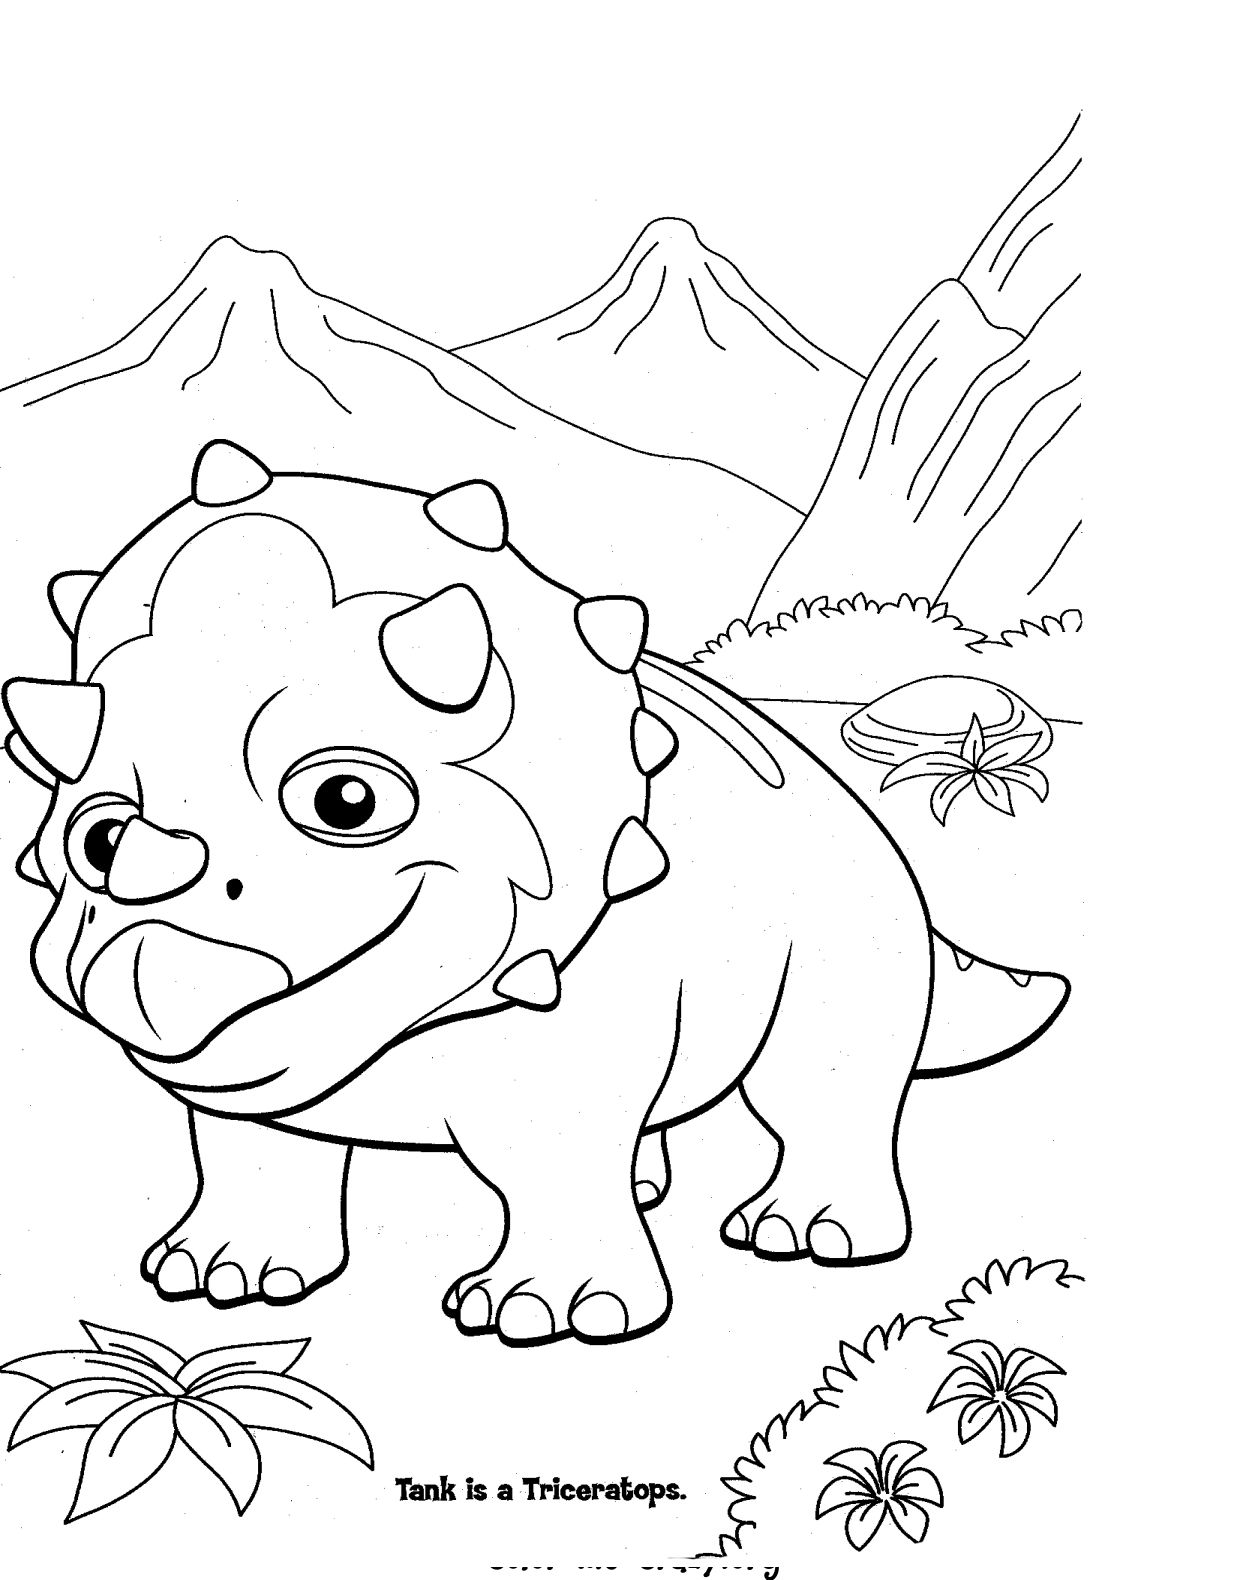 dino coloring page dino coloring page page dino coloring